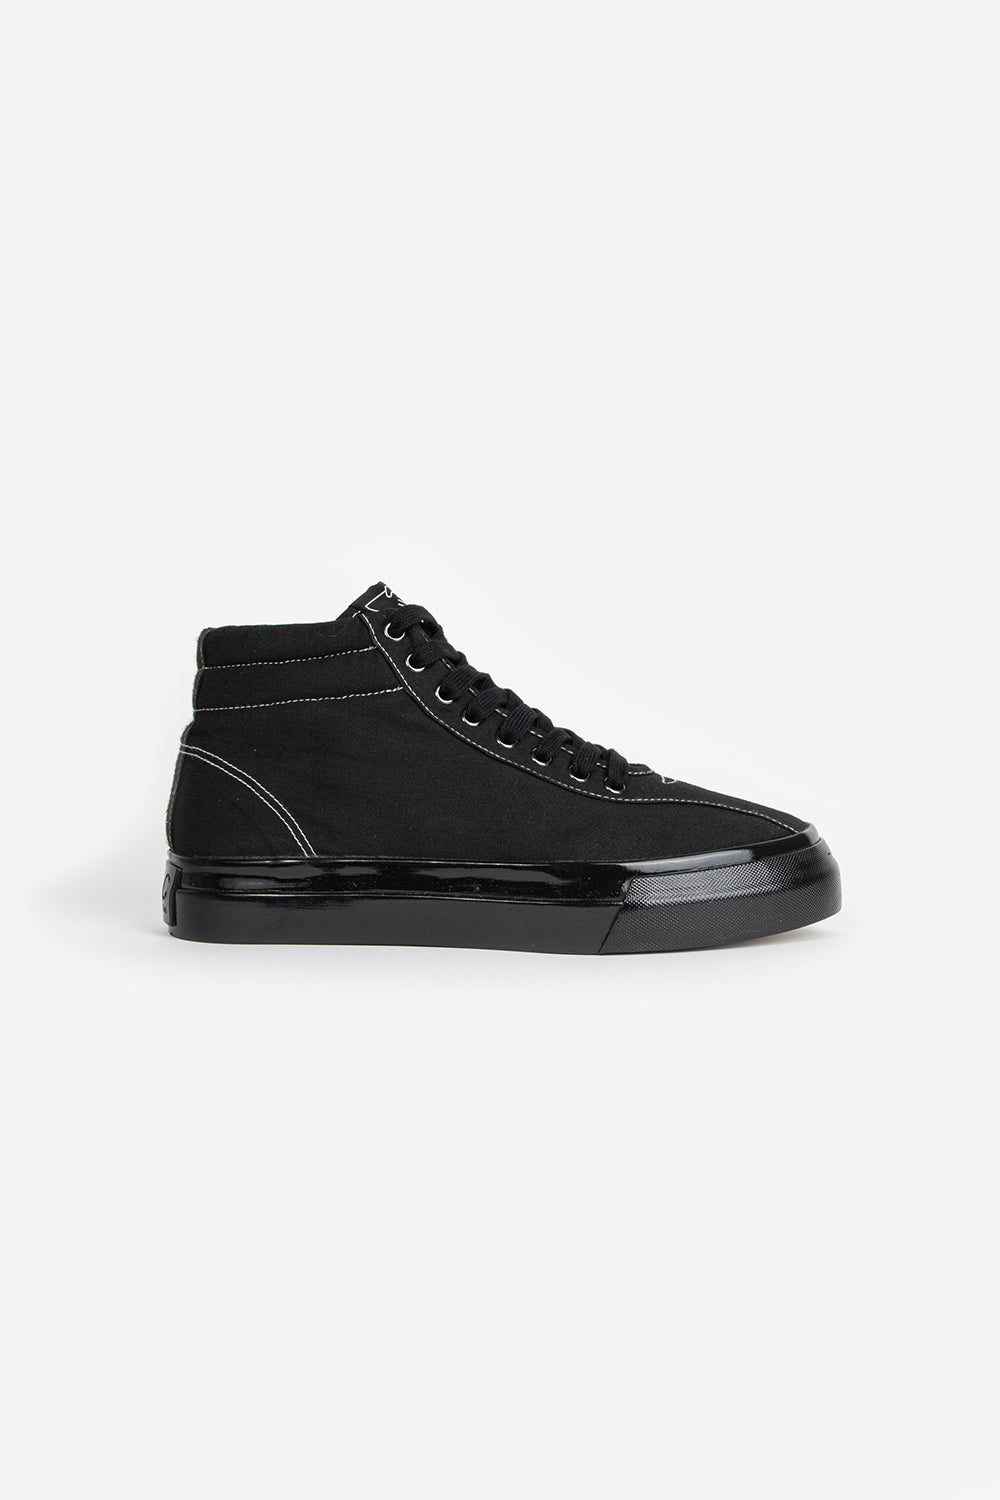 stepney workers club varden black black